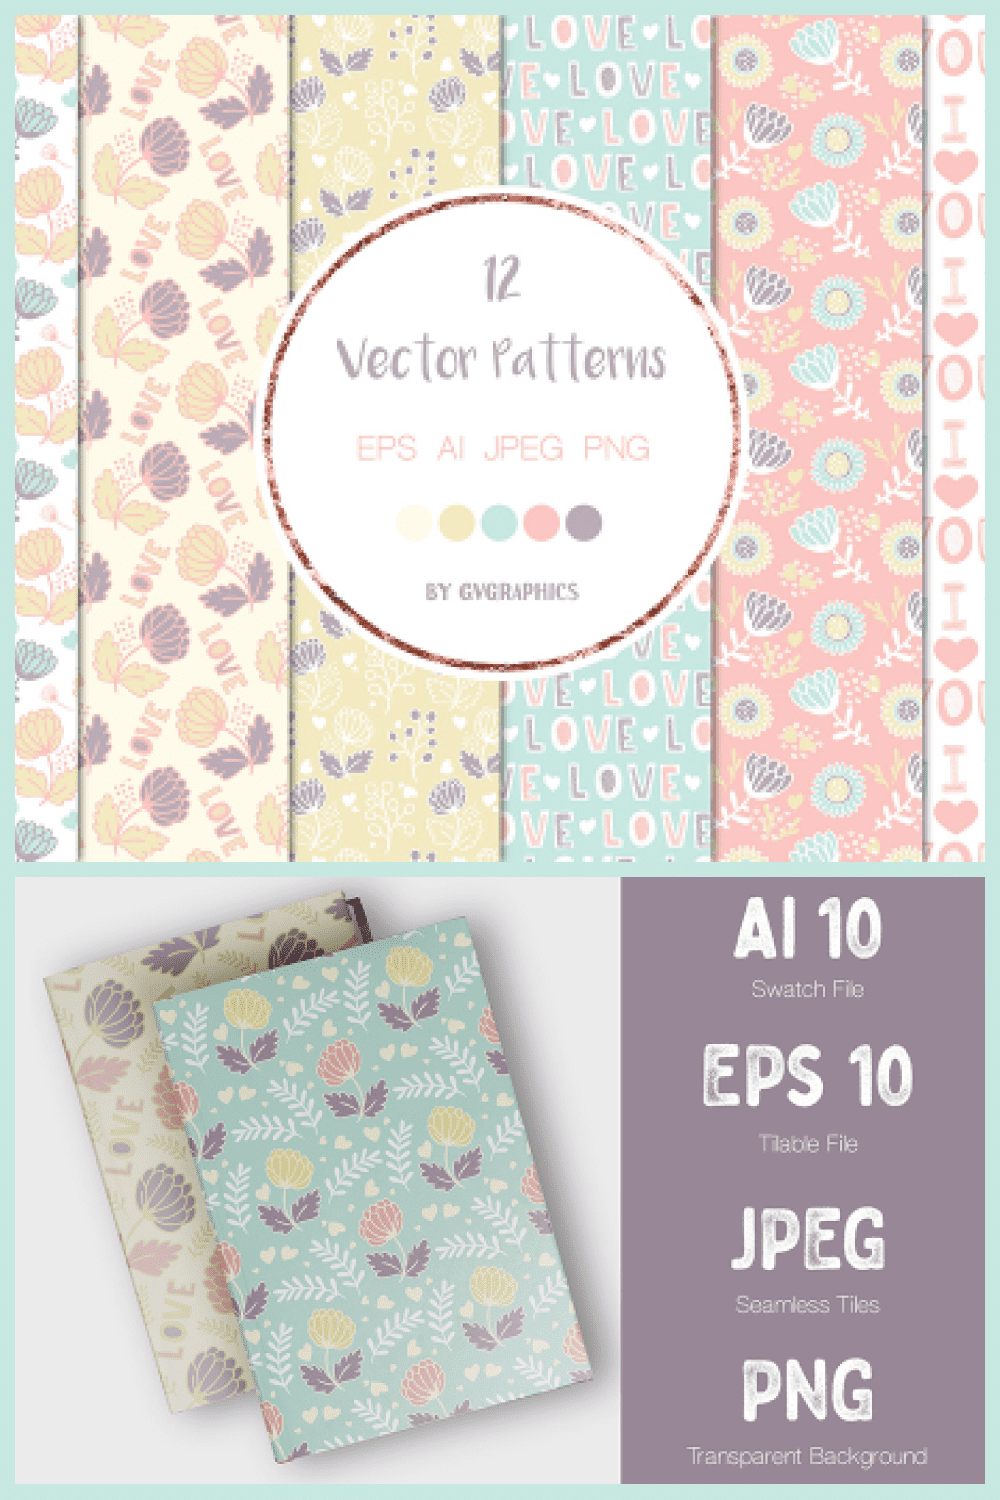 Happy Valentine's Day Vector Patterns and Seamless Tiles - MasterBundles - Pinterest Collage Image.